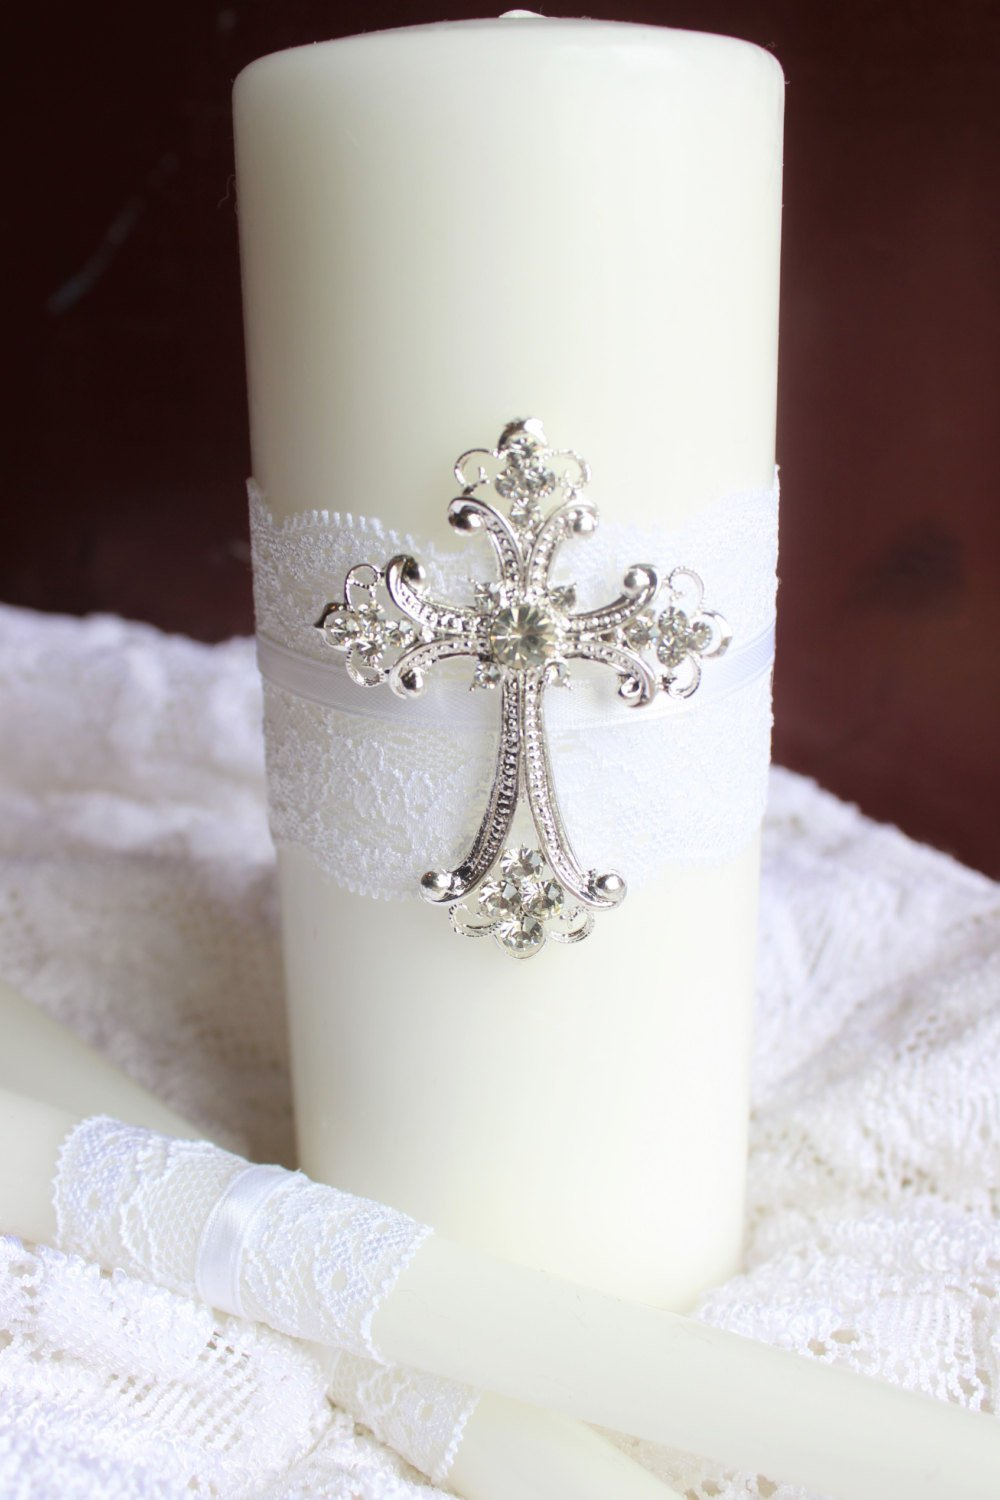 Silver Cross Wedding Unity Candles - White OR Ivory Candle Set for Church Wedding